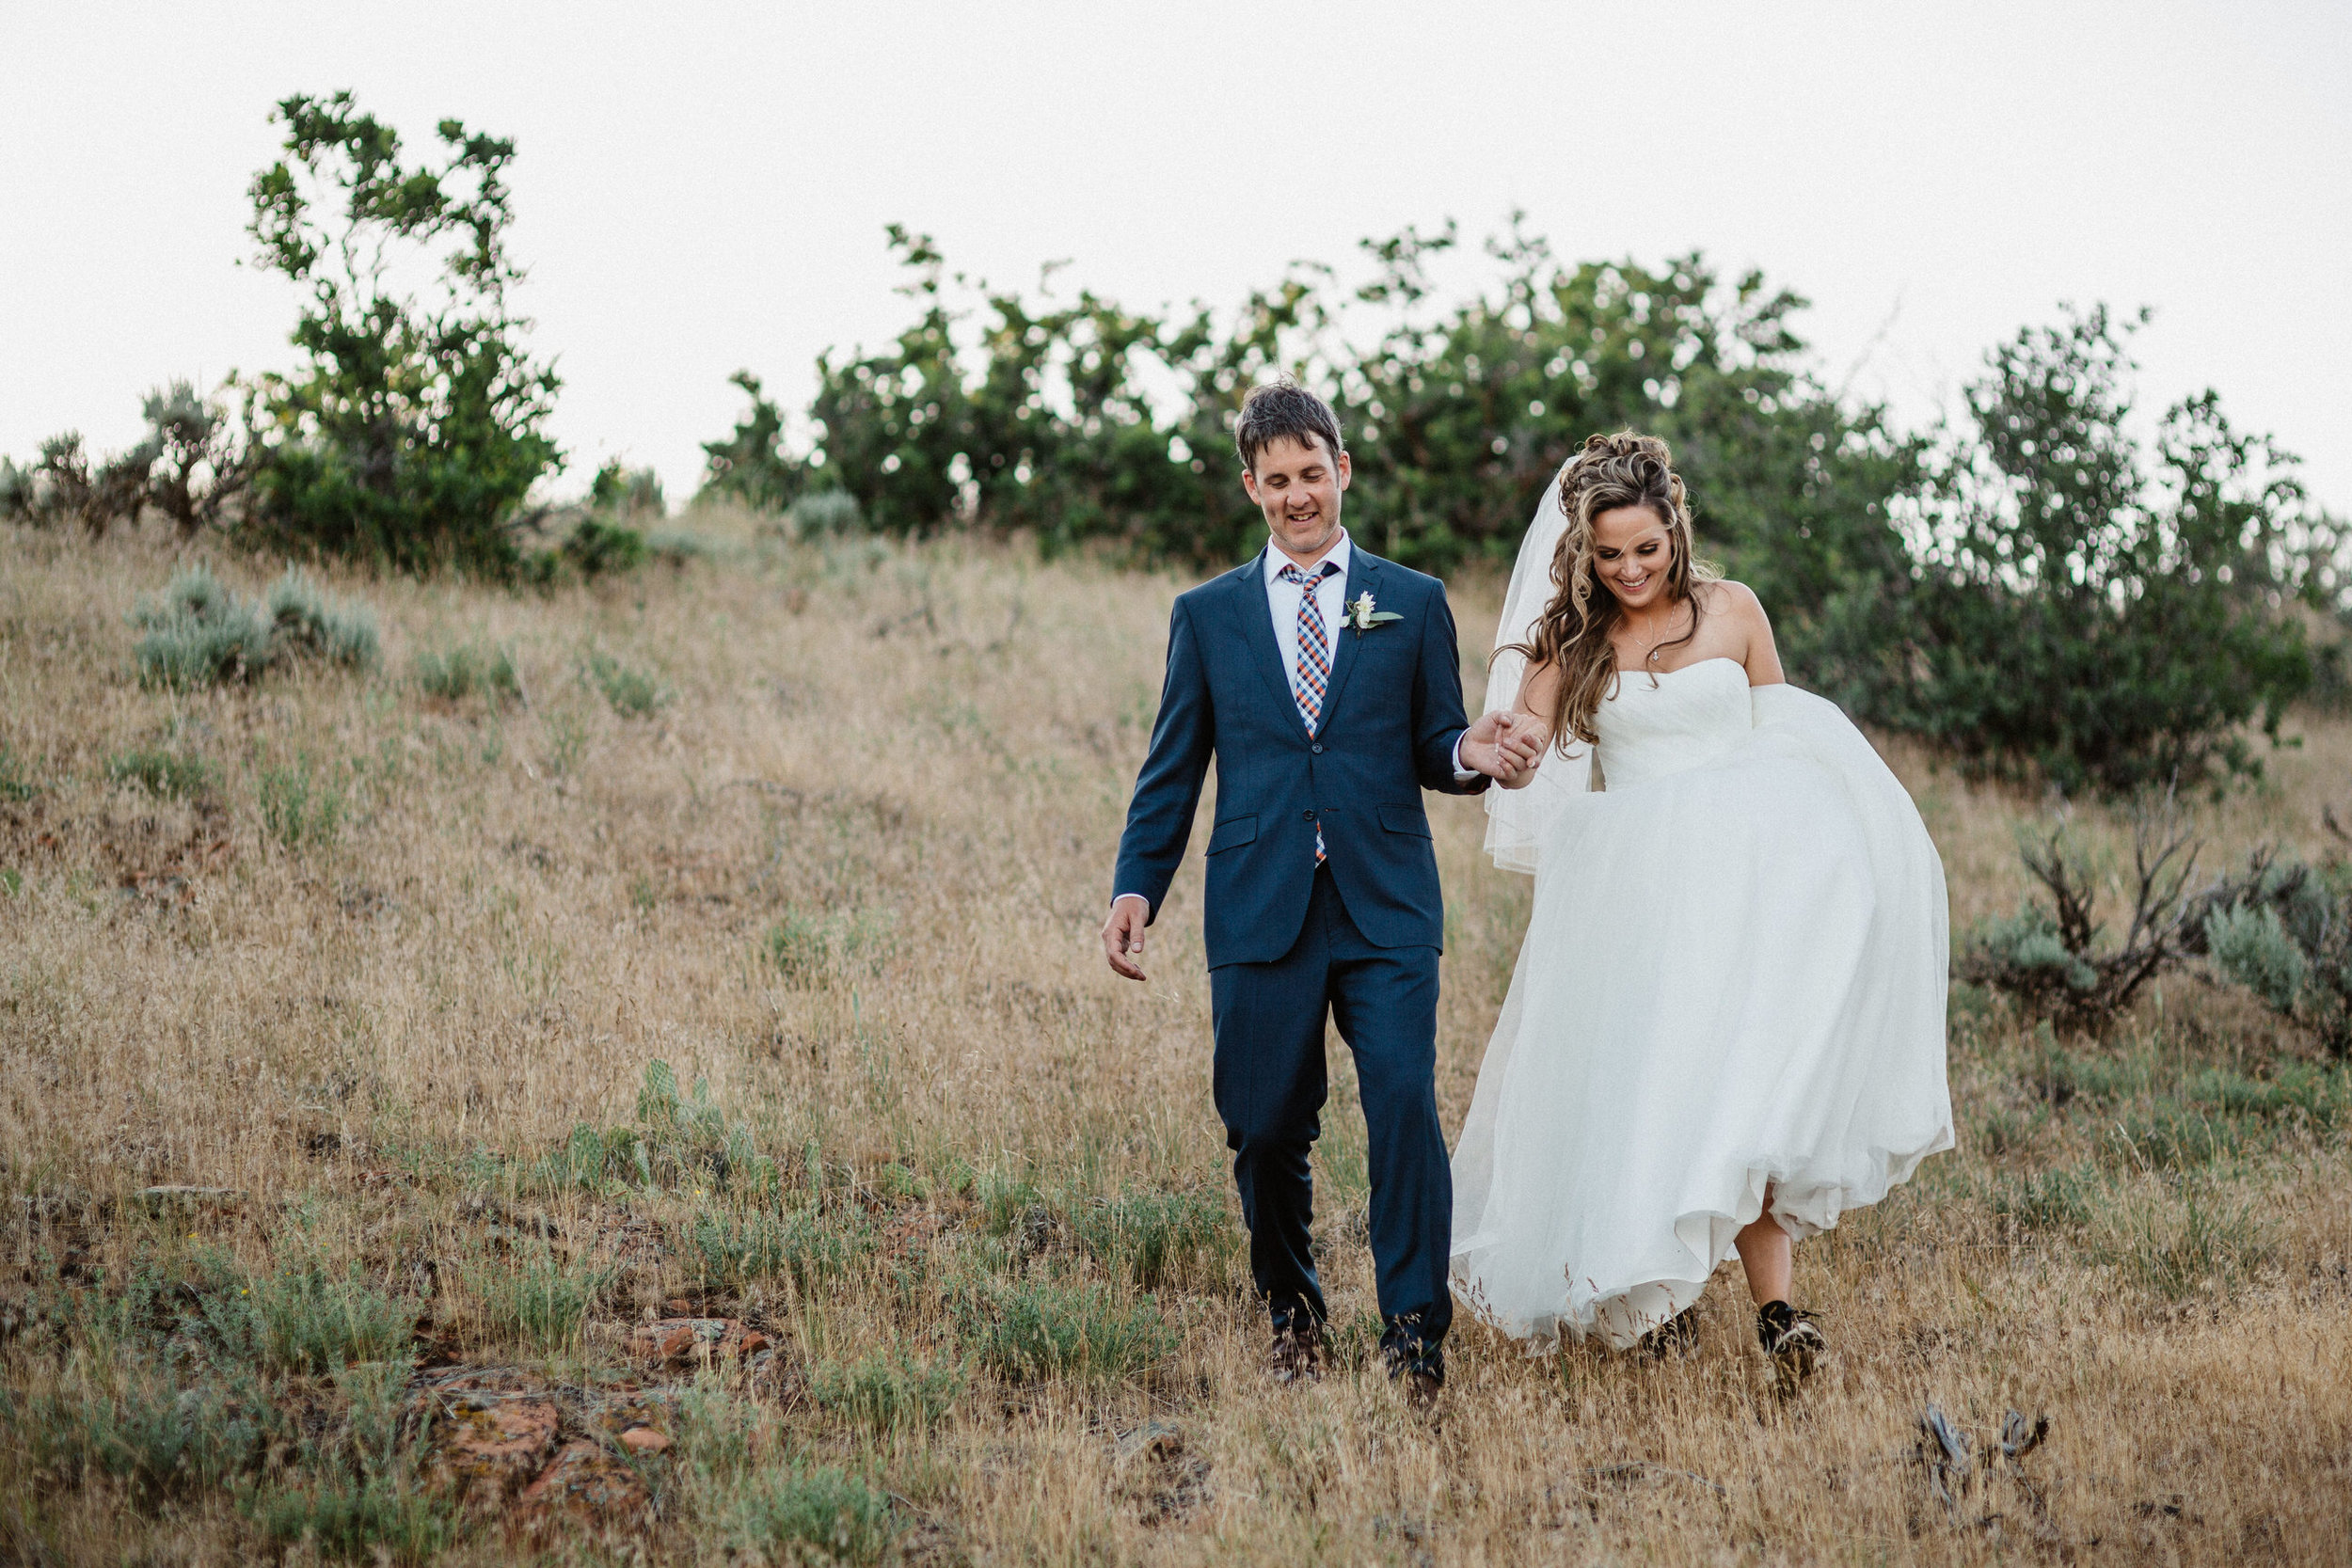 backyard wedding Heber City Utah destination wedding portland oregon photography0129.JPG